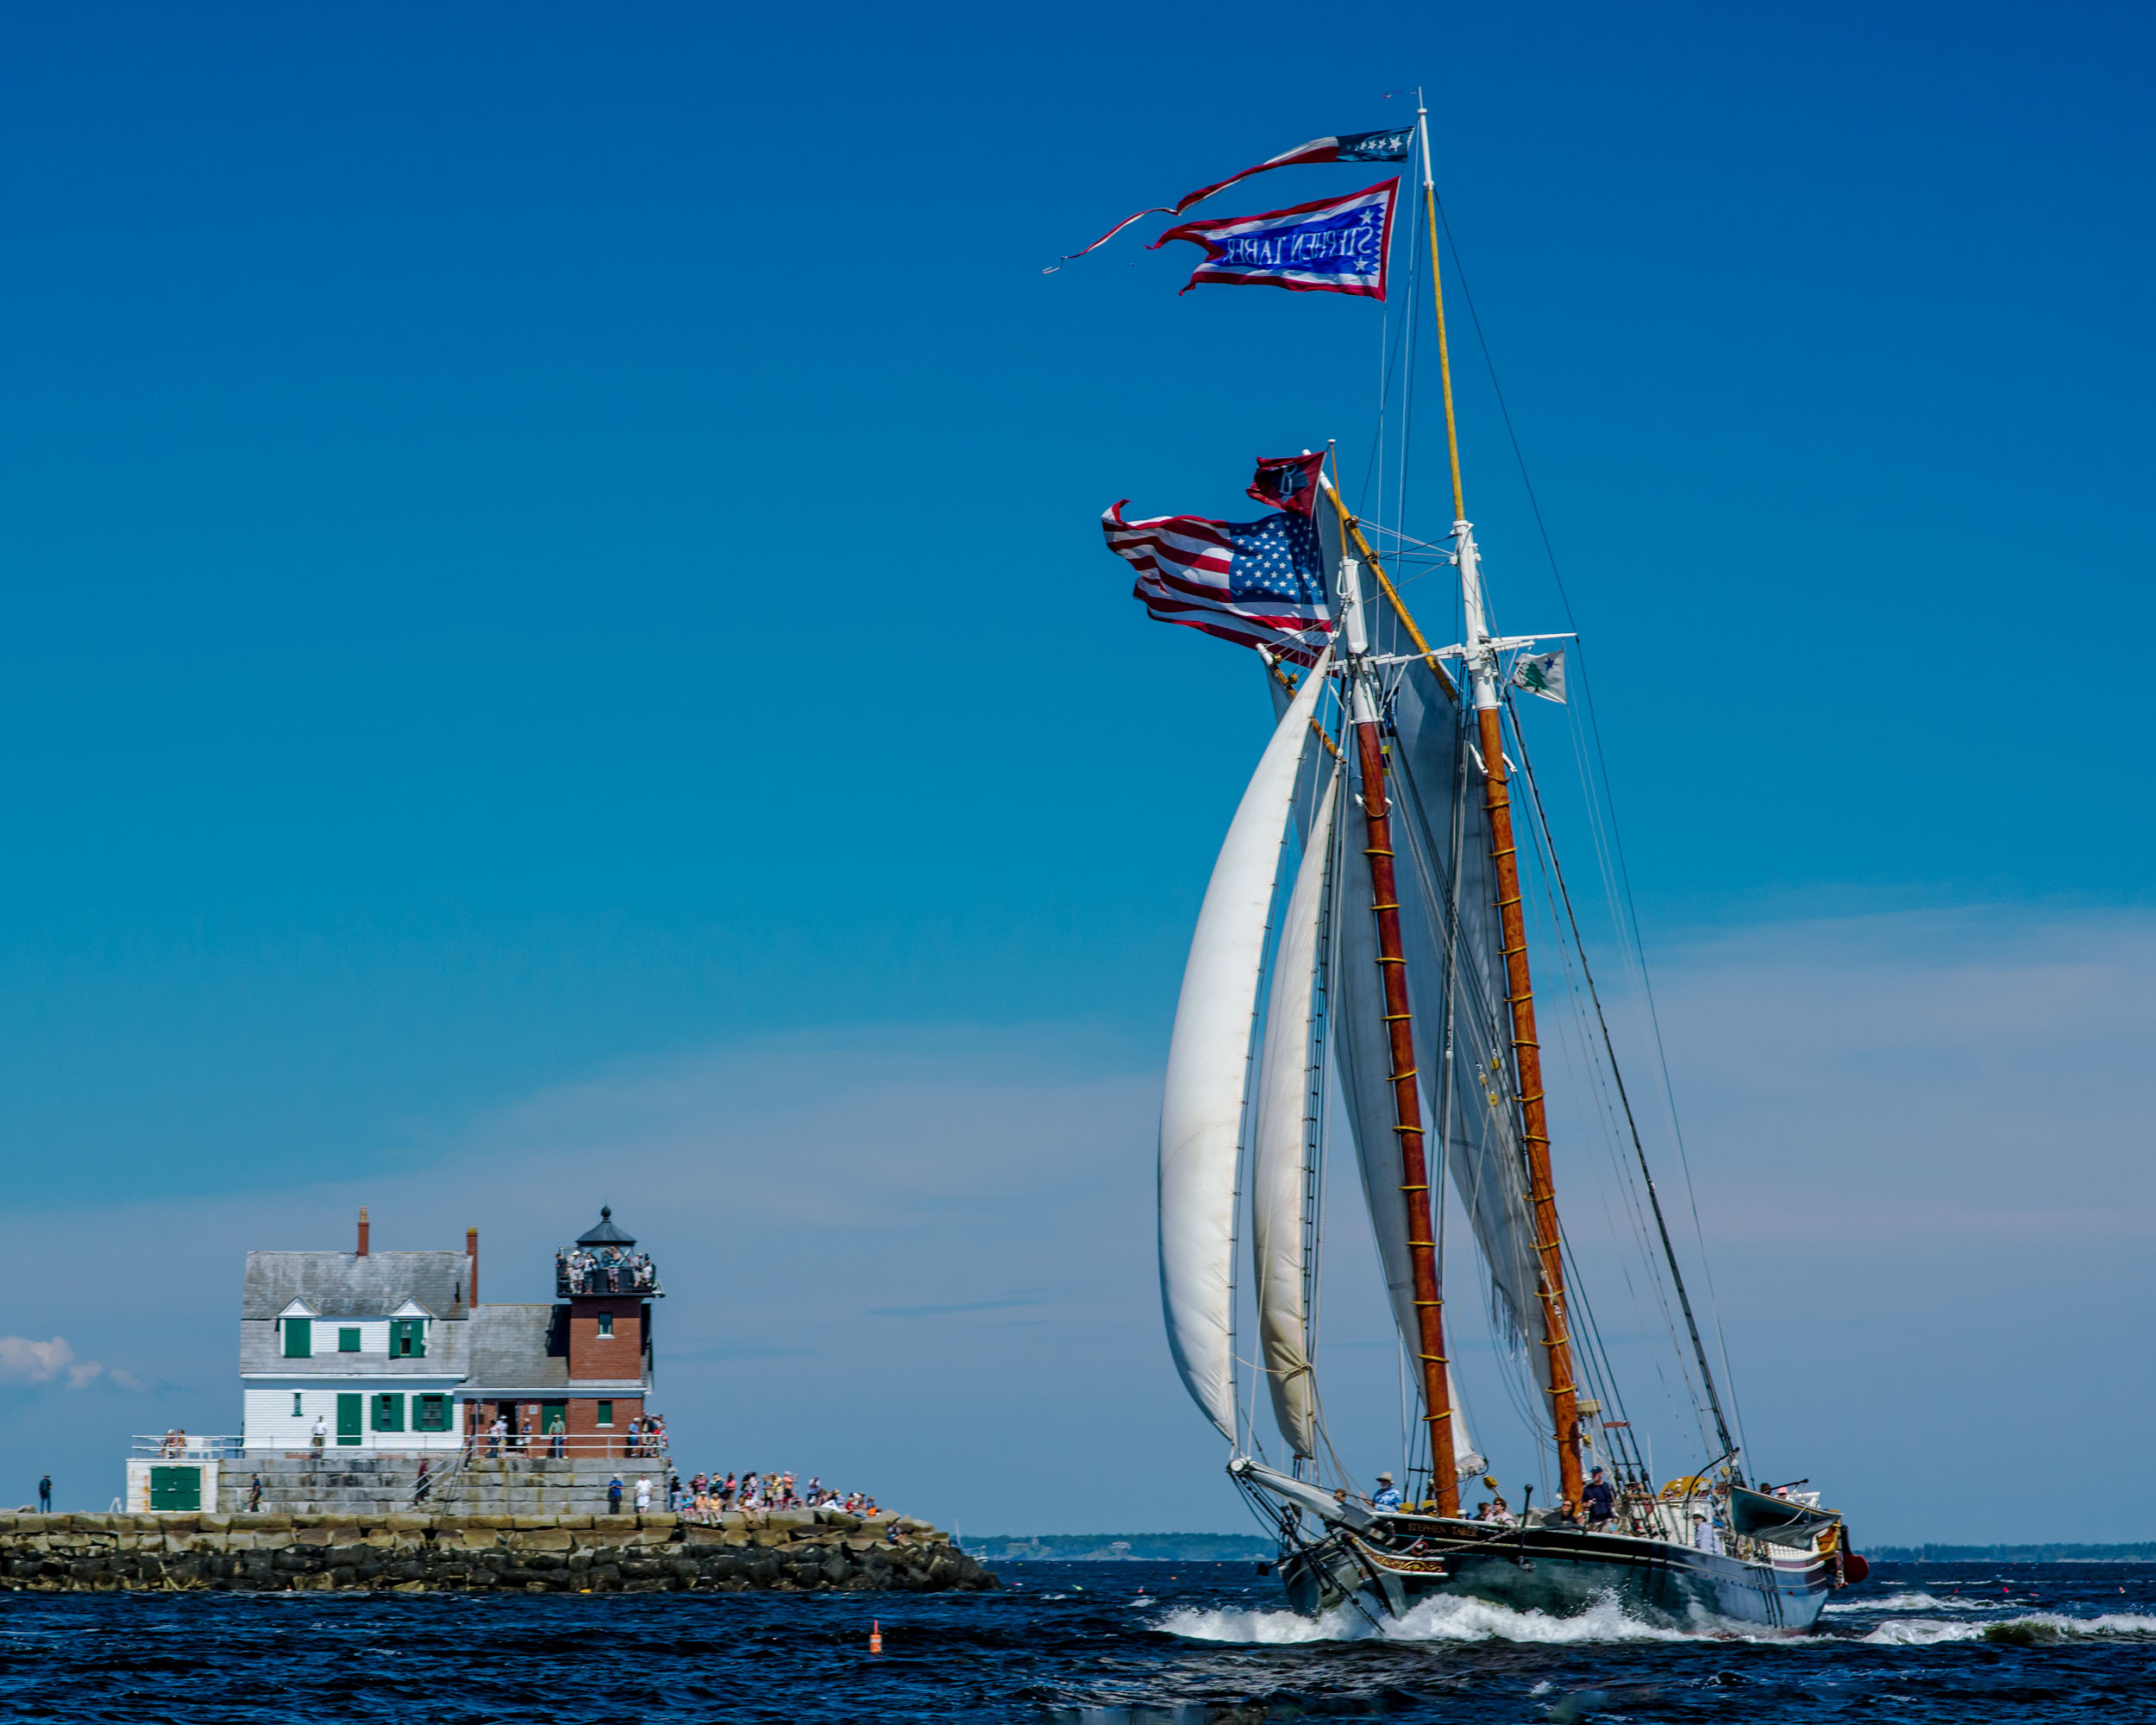 The  Taber  rounding the Rockland Breakwater Lighthouse. Photo: Charles Durfor